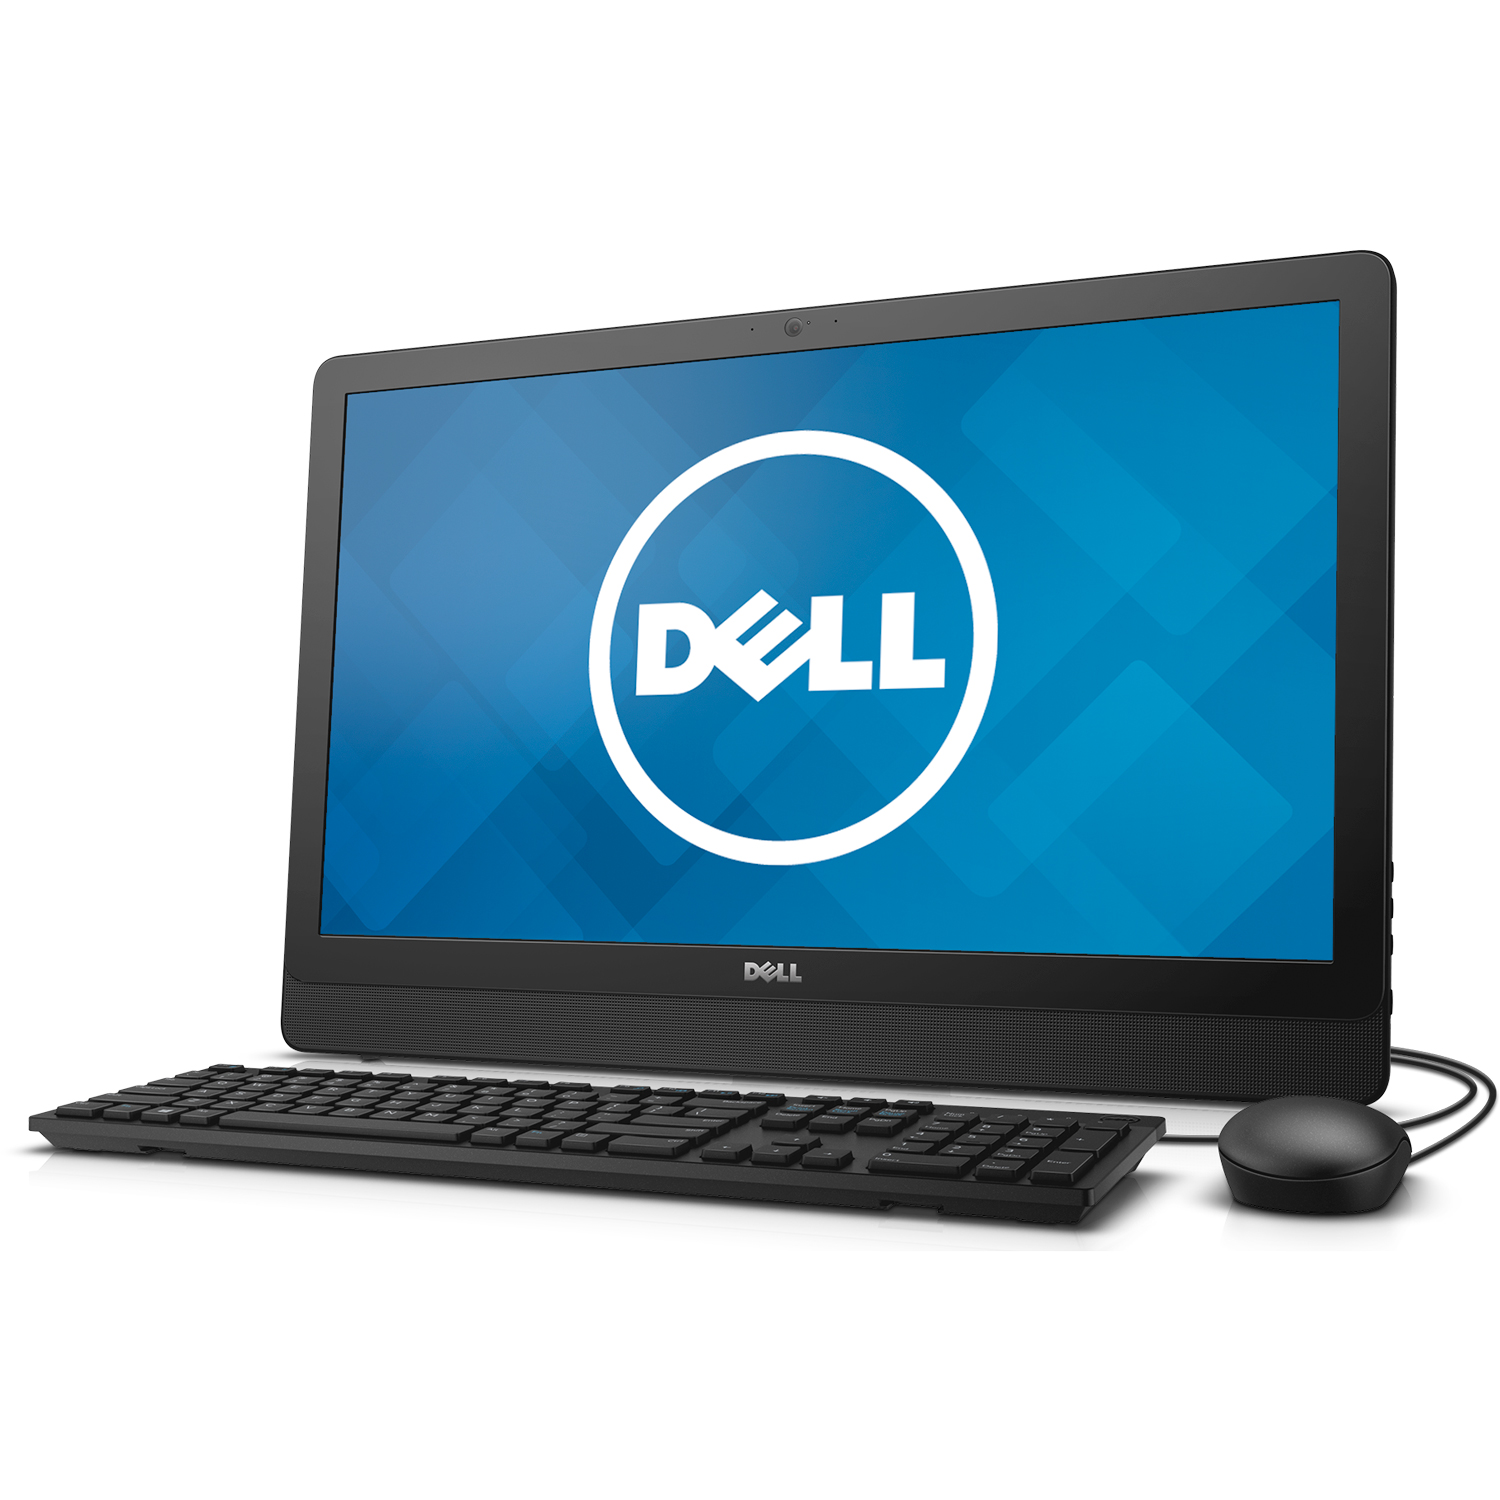 "Dell Inspiron - 23.8"" - All In One - J3710 - 4GB - 1TB - Black"